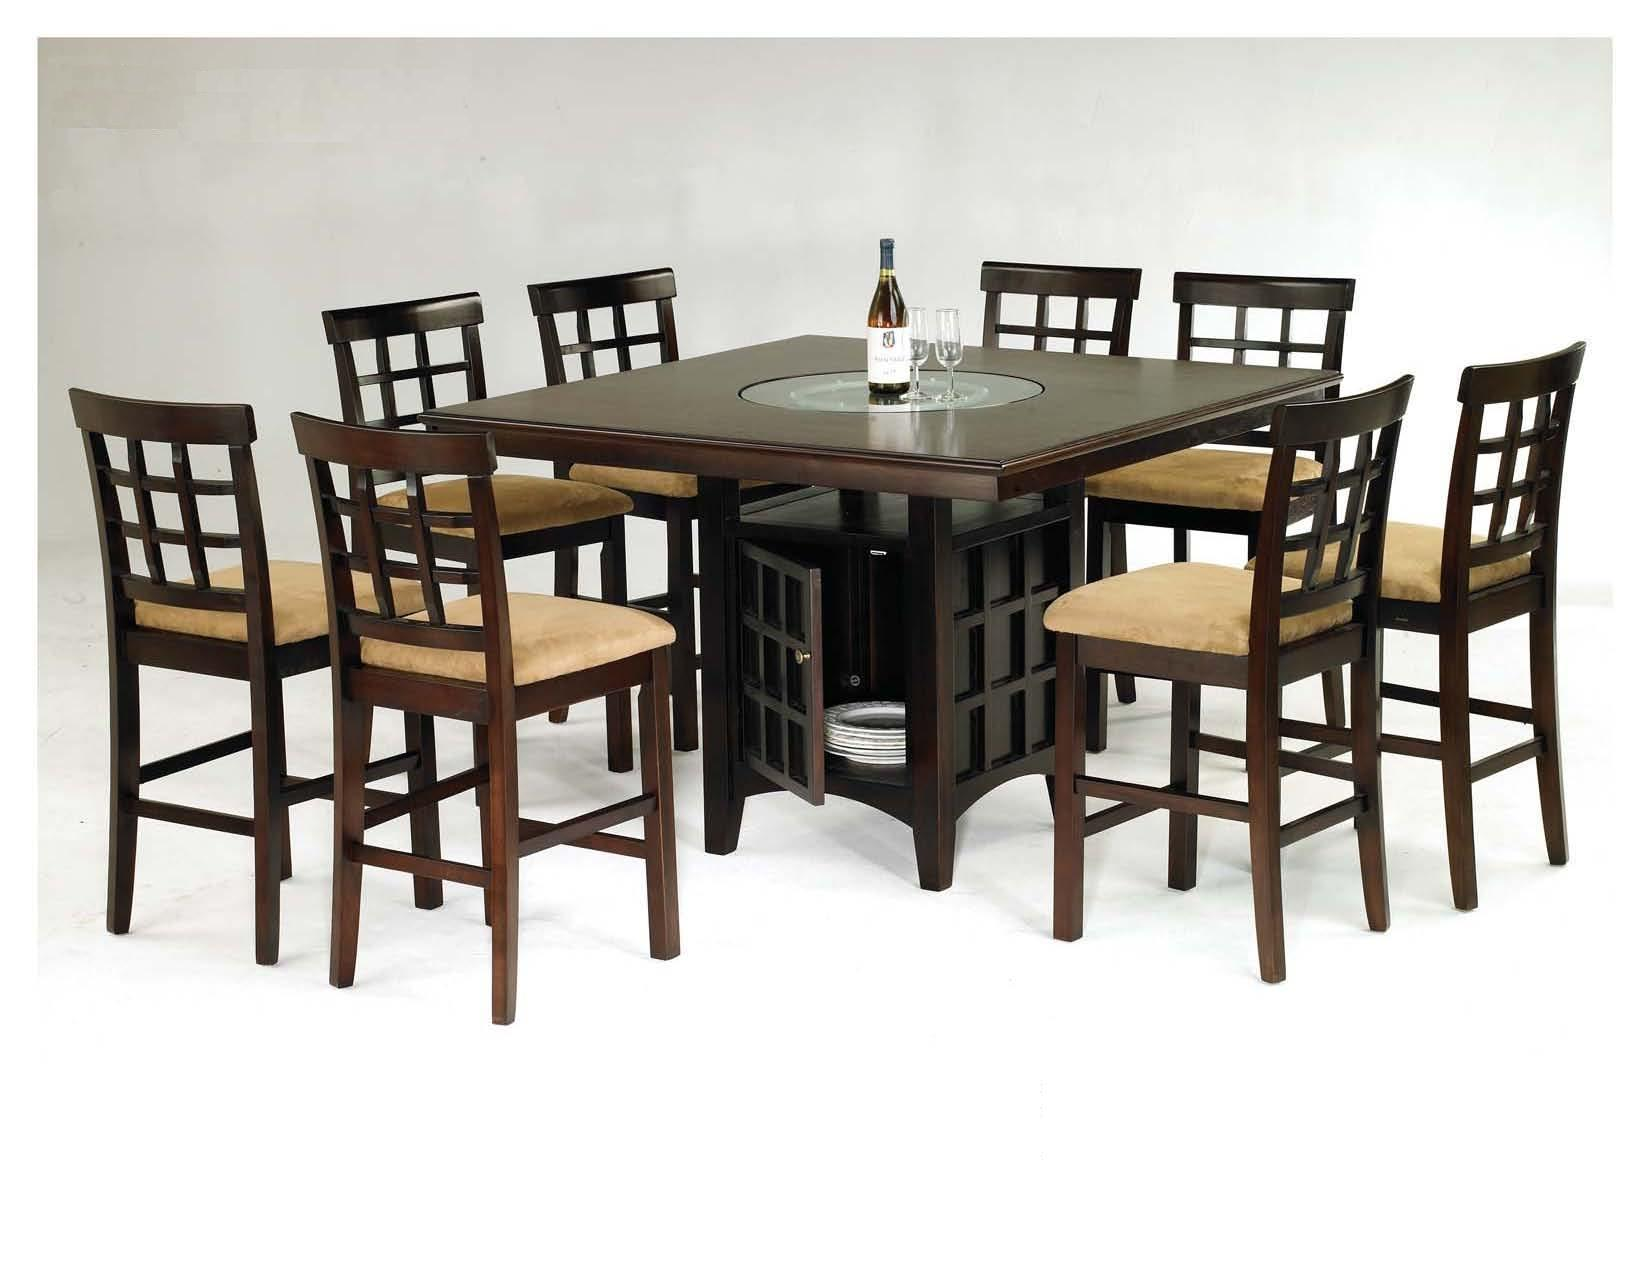 mission 7-piece counter-height dining set with cappuccino finish